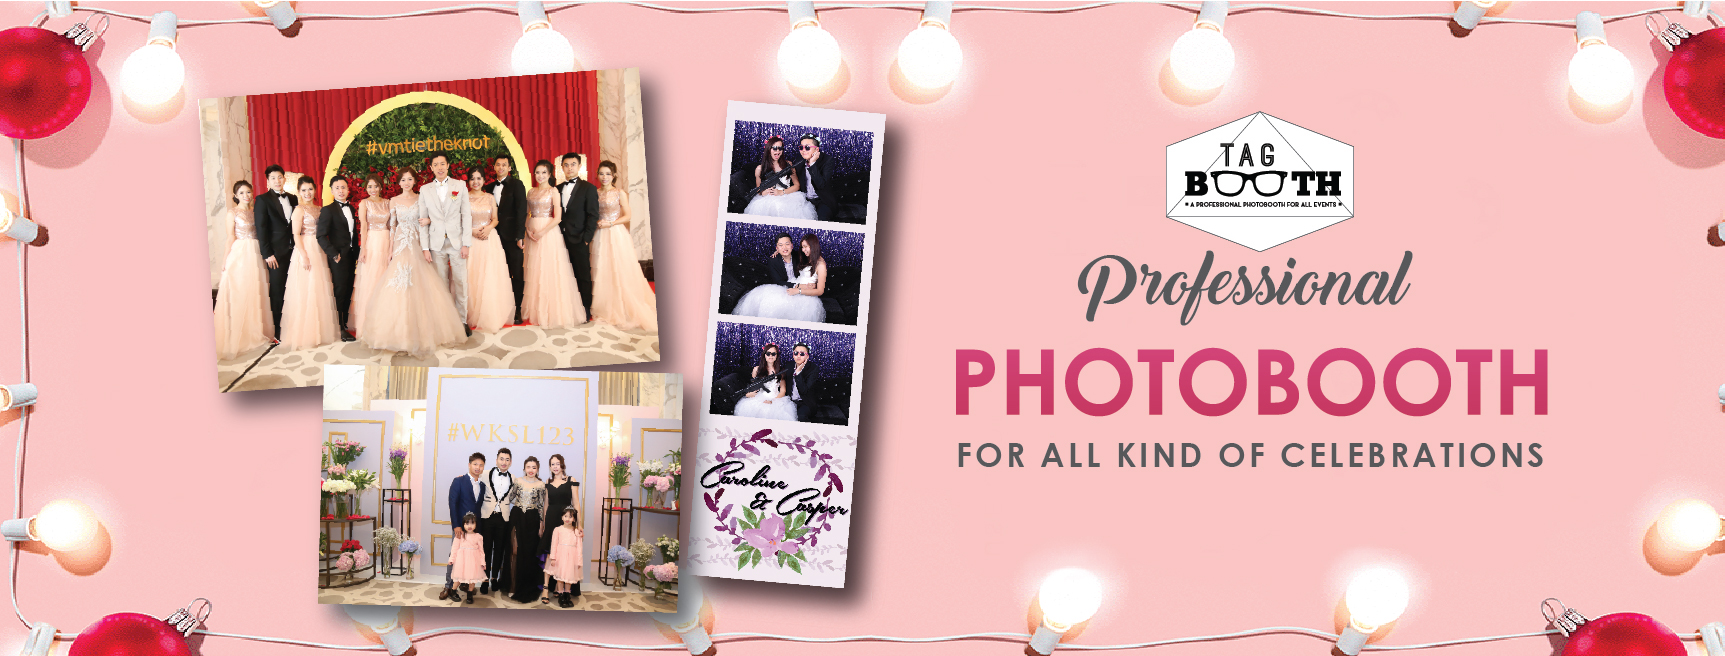 Tagbooth photo booth tagbooth photo booth providing the most facebook banner april 01 01 01 solutioingenieria Gallery